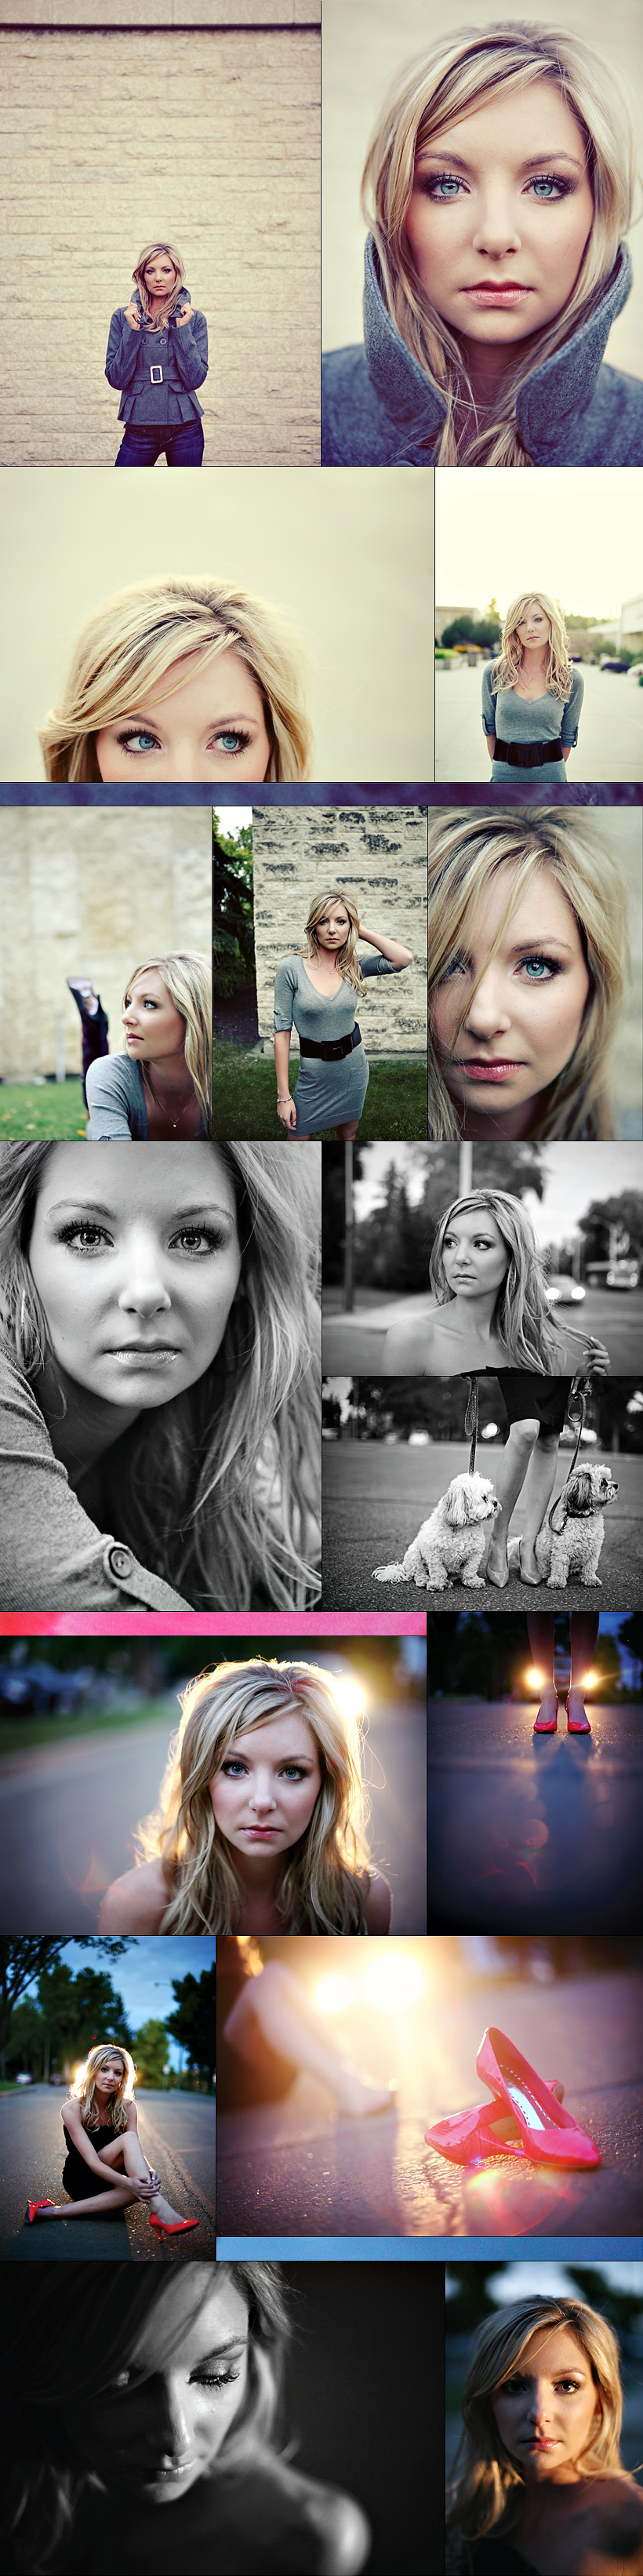 edmonton portrait photographer